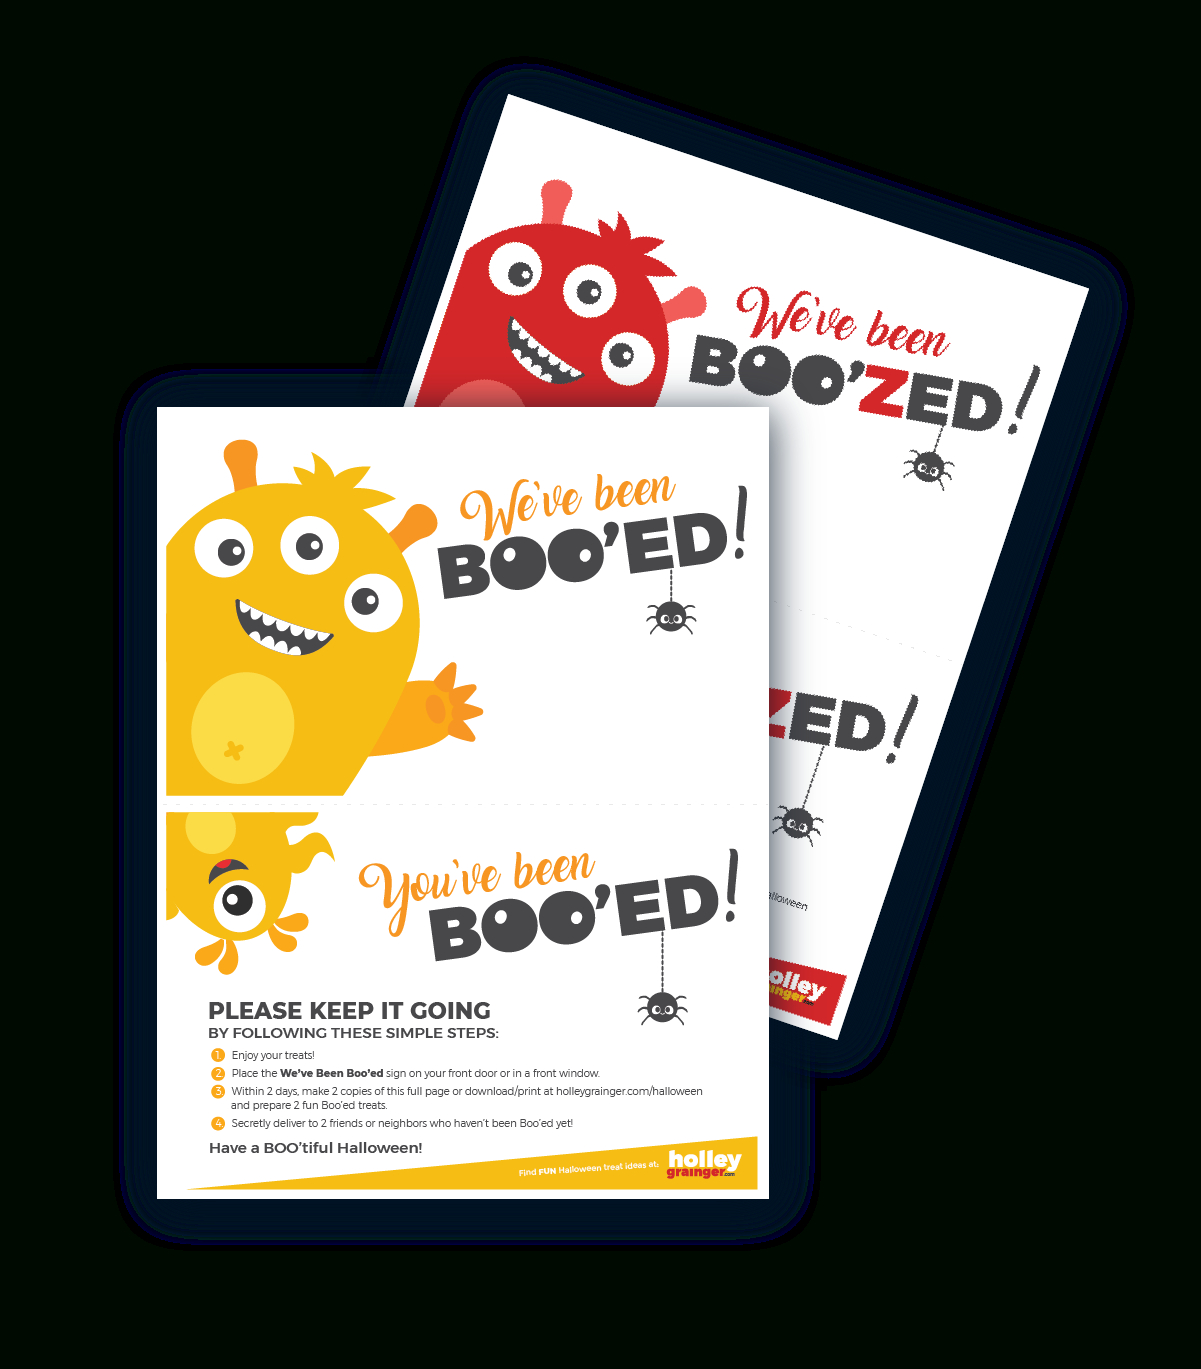 You've Been Boo'zed! Free Halloween Printable | Holley Grainger - You Ve Been Boozed Free Printable